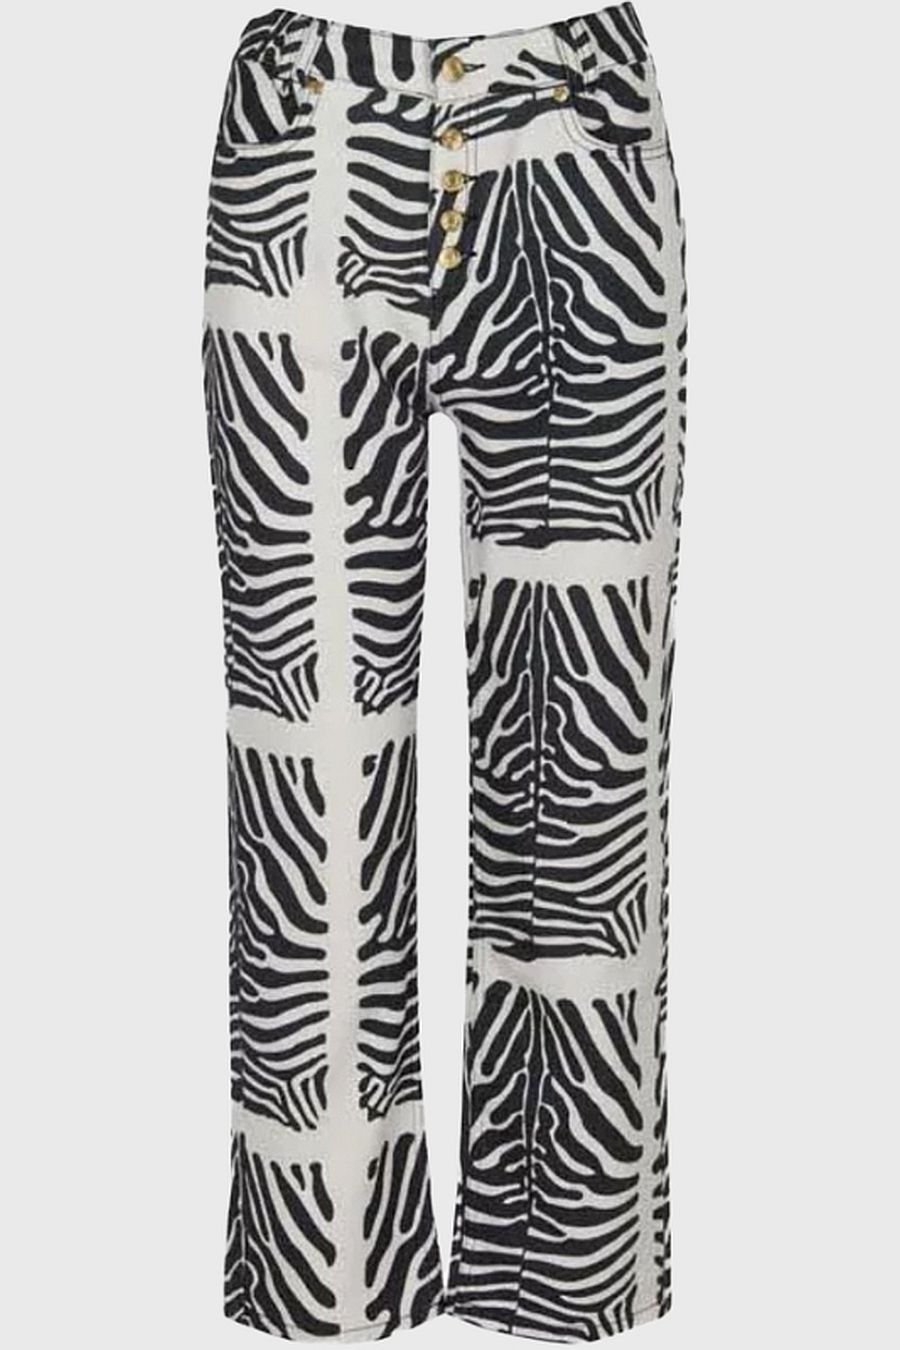 House Of Sunny Reef Jessie Pants